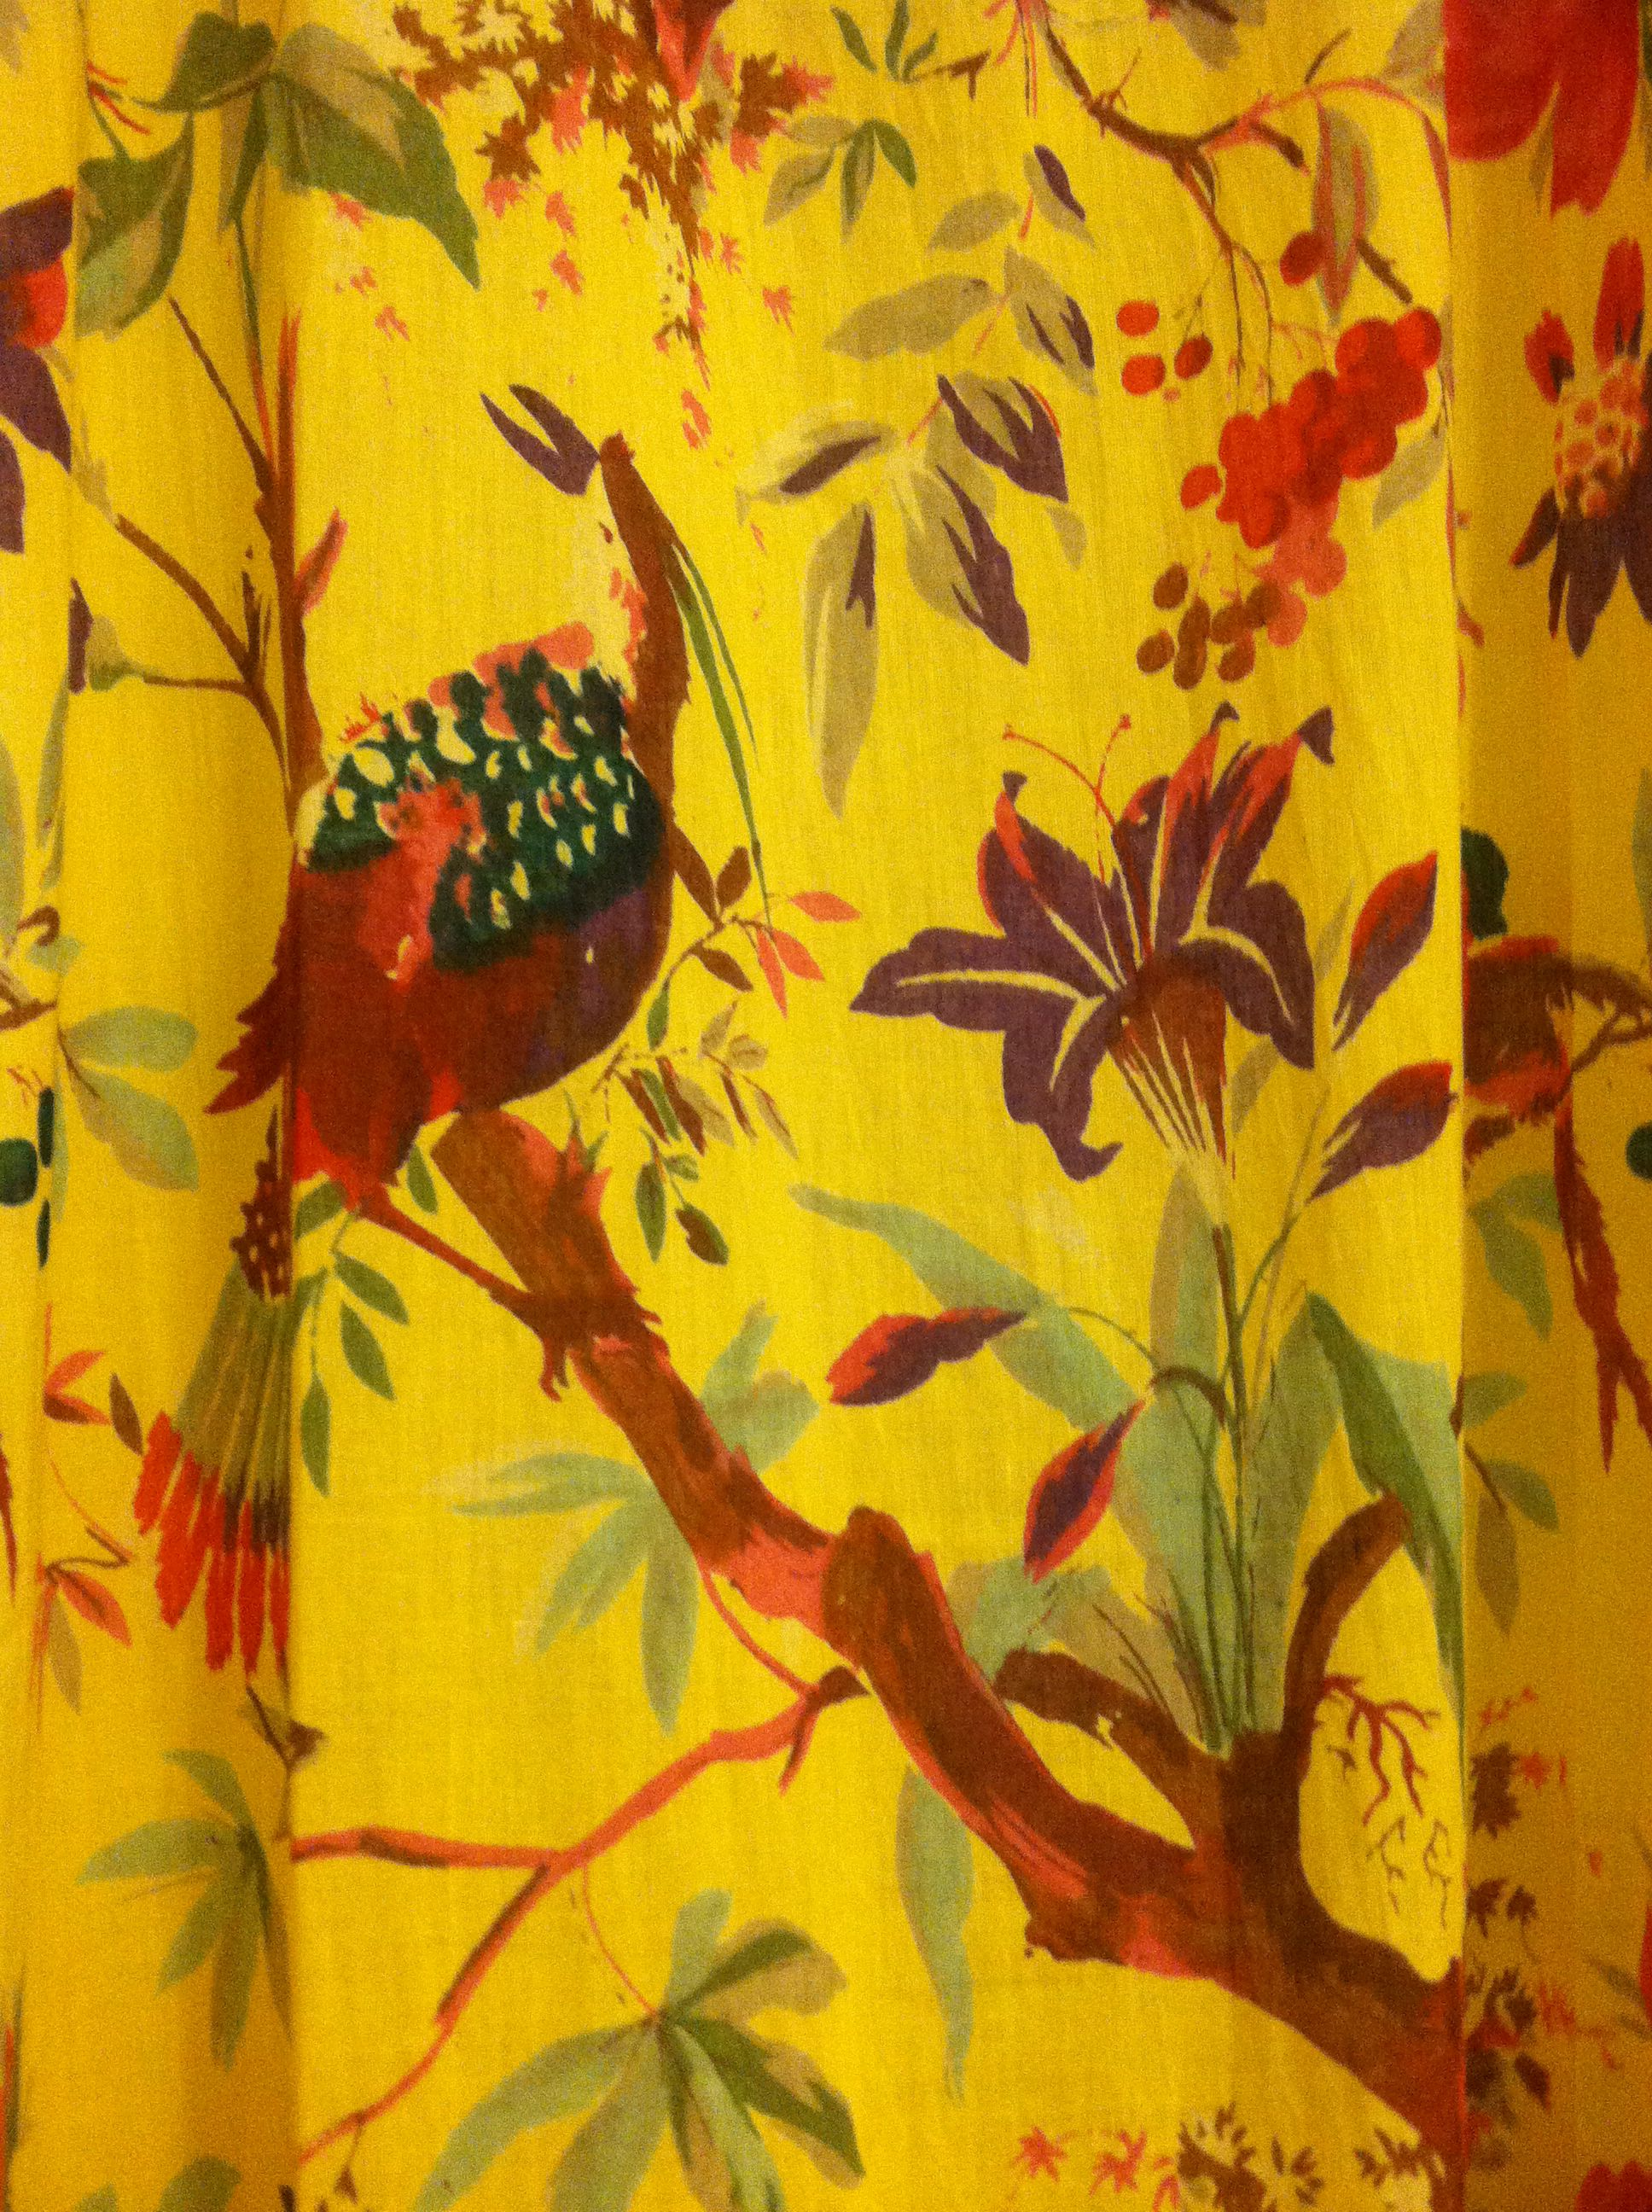 Love these drapes I purchased from Modcloth. Inspiration for my new color scheme. Aqua, red and yellow! (And some black accents)